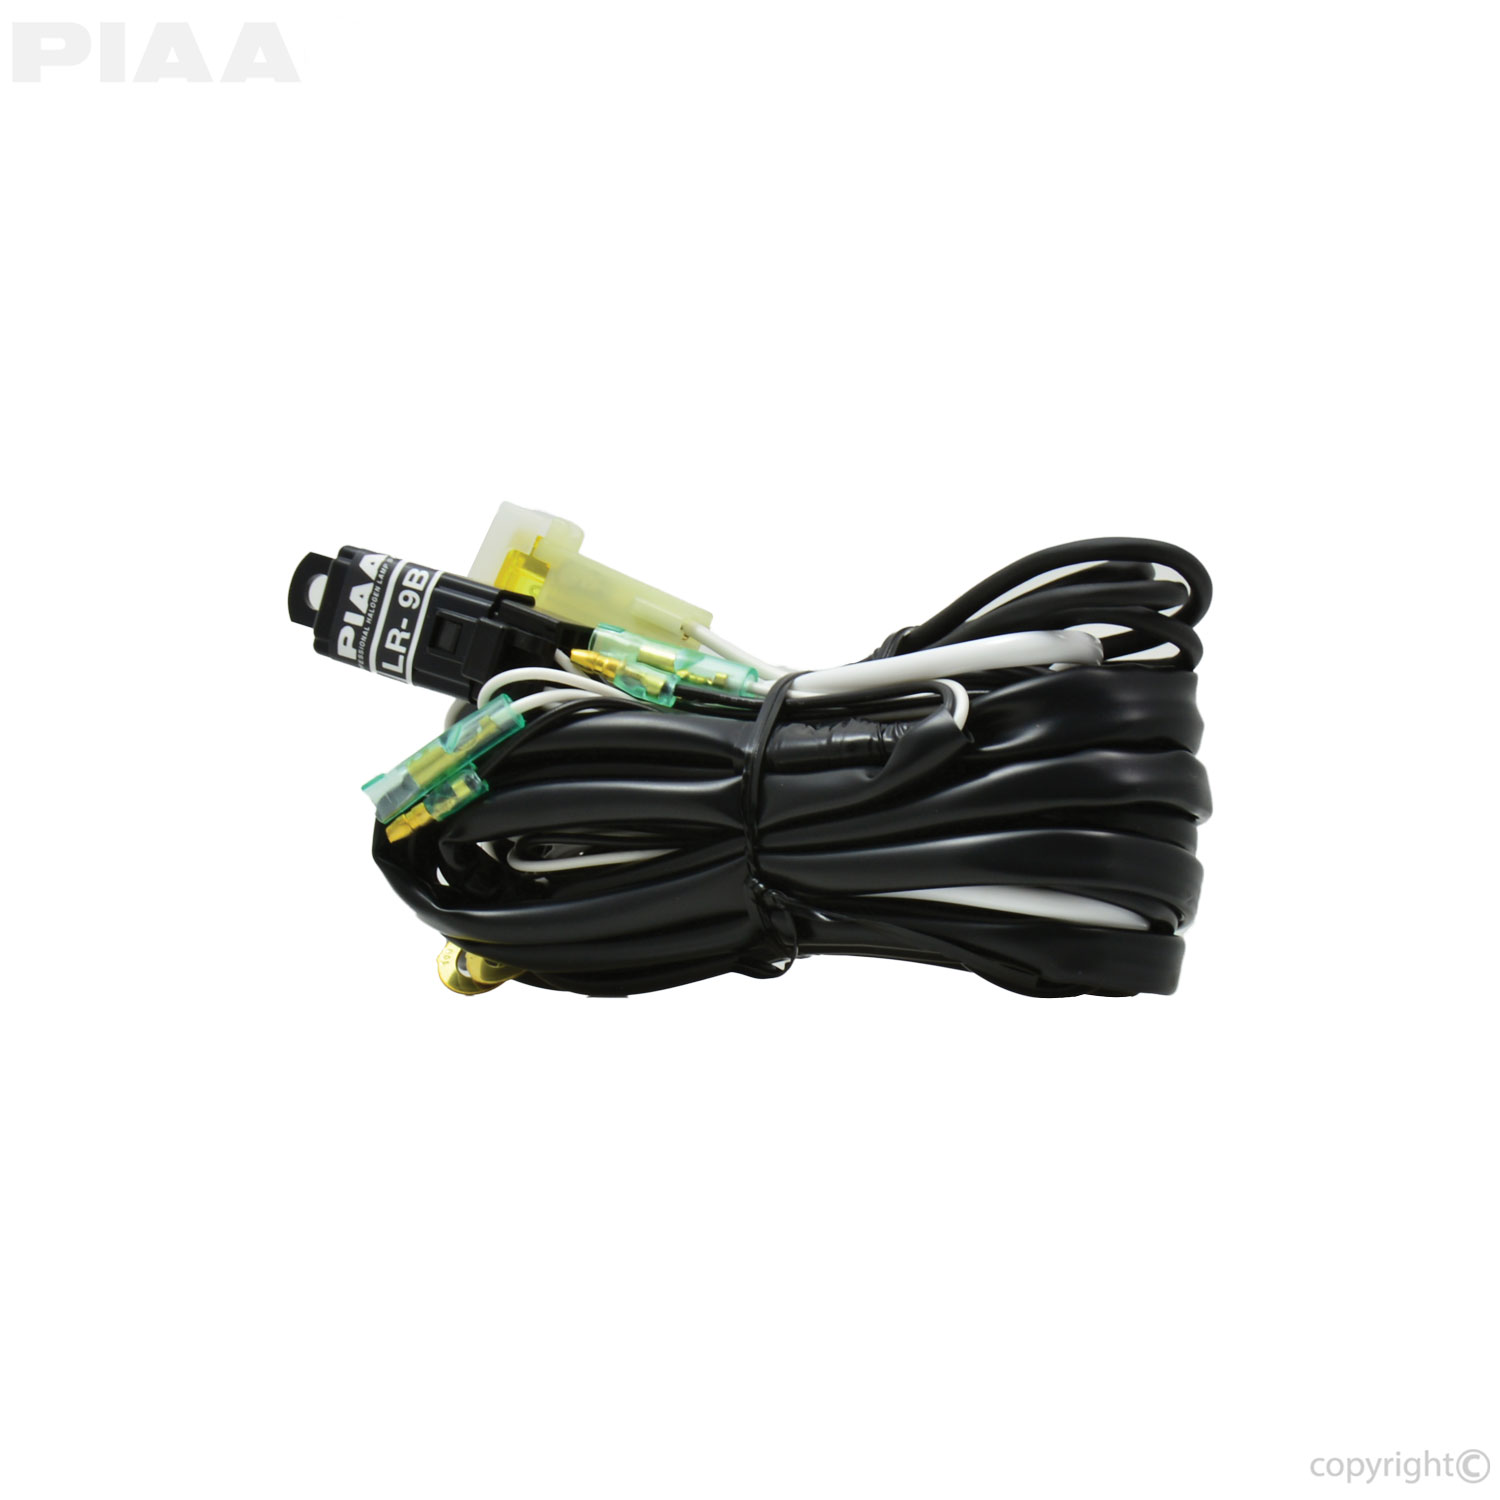 piaa 34042 harness hr?bw=1000&w=1000&bh=1000&h=1000 piaa piaa wiring harness up to (lr 9b) with bullet connectors 34042 2010 wire harness for a 2010 john deere at n-0.co